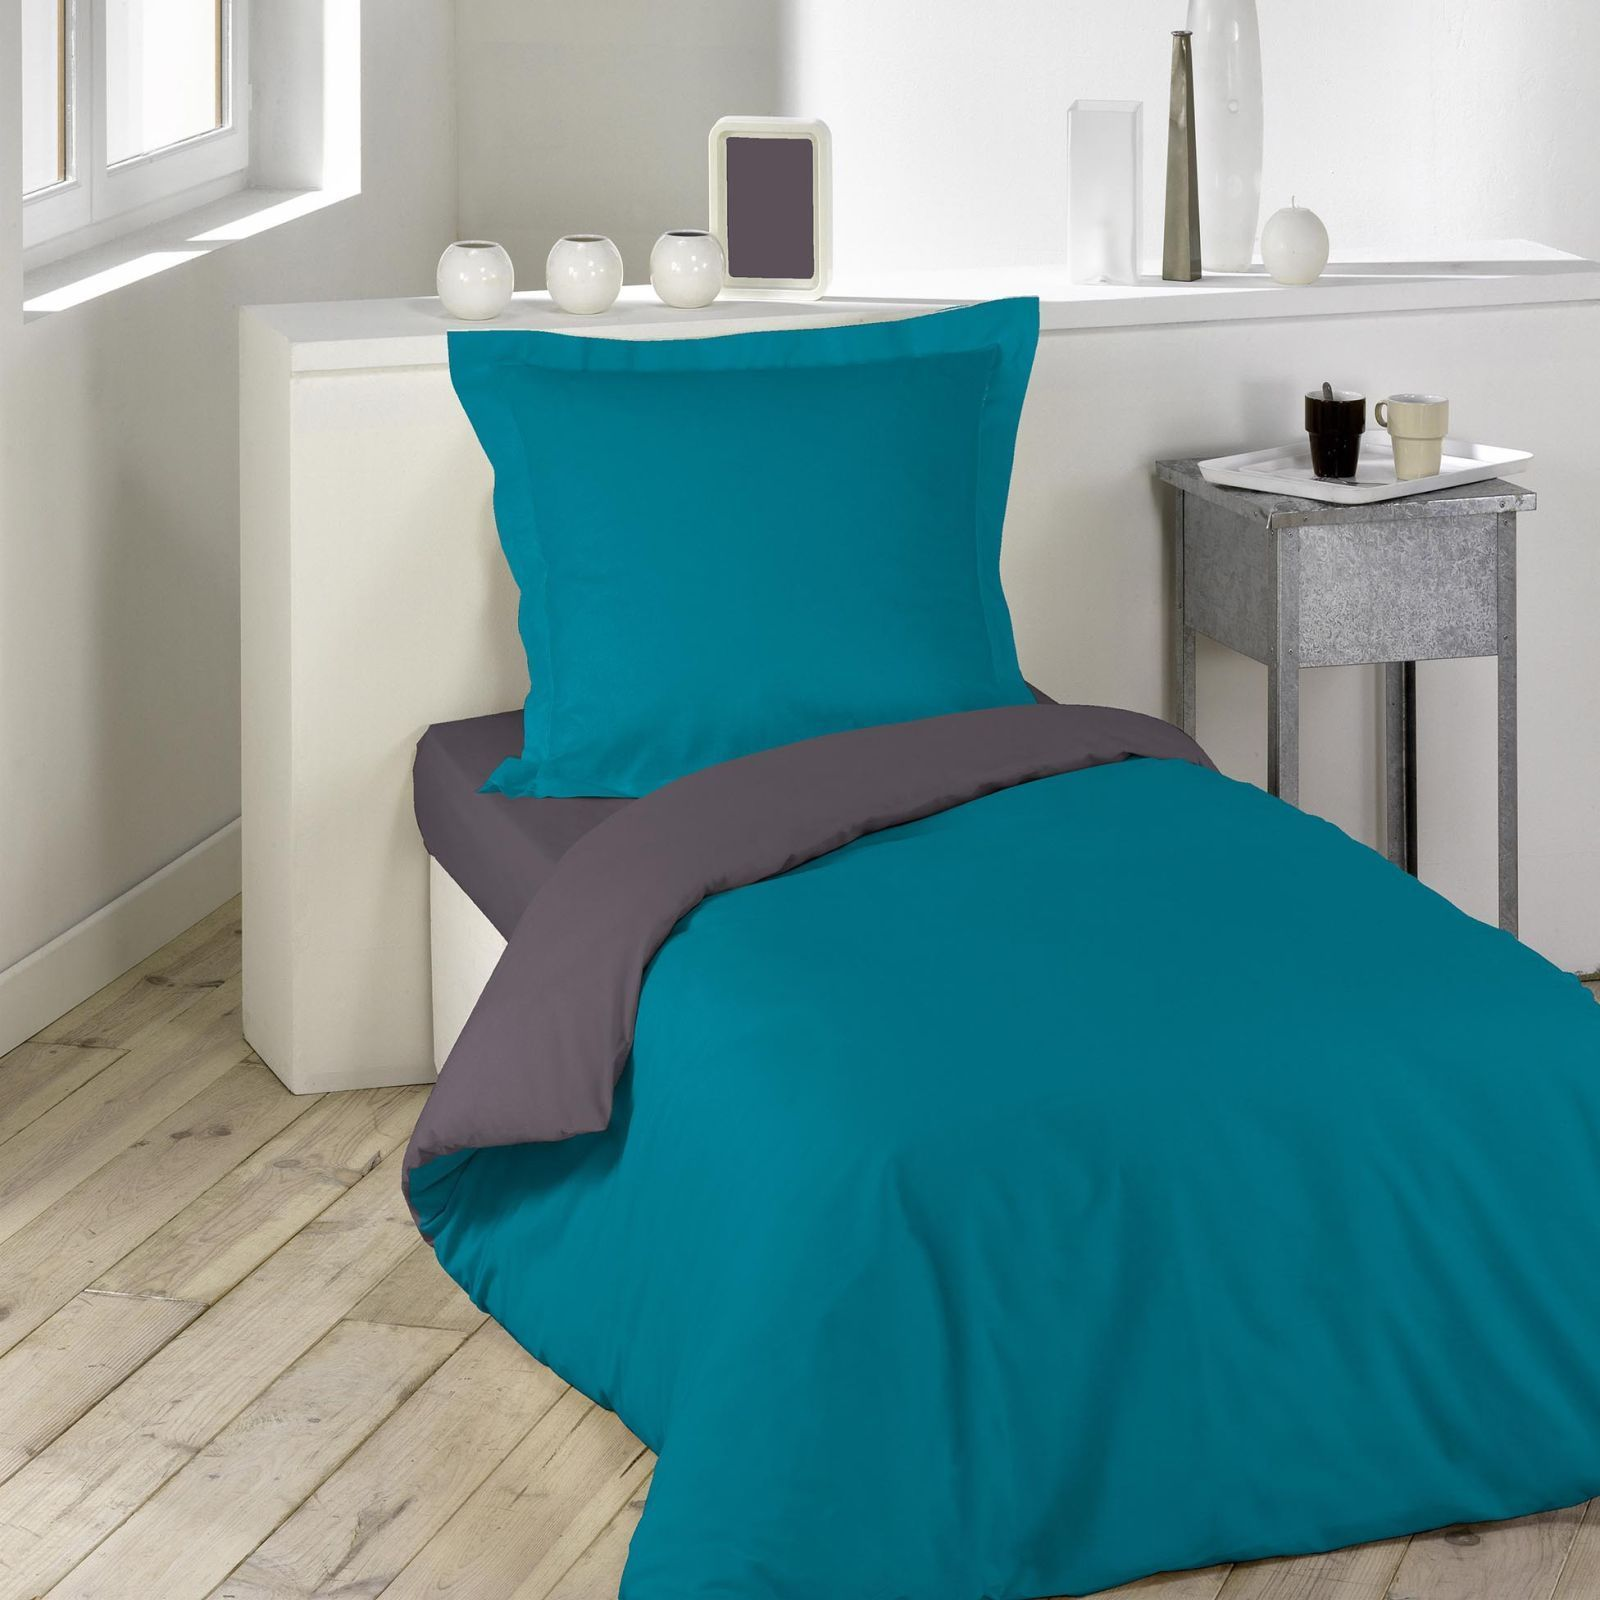 douceur d 39 int rieur outre mer parure de lit 2 pi ces bleu brandalley. Black Bedroom Furniture Sets. Home Design Ideas